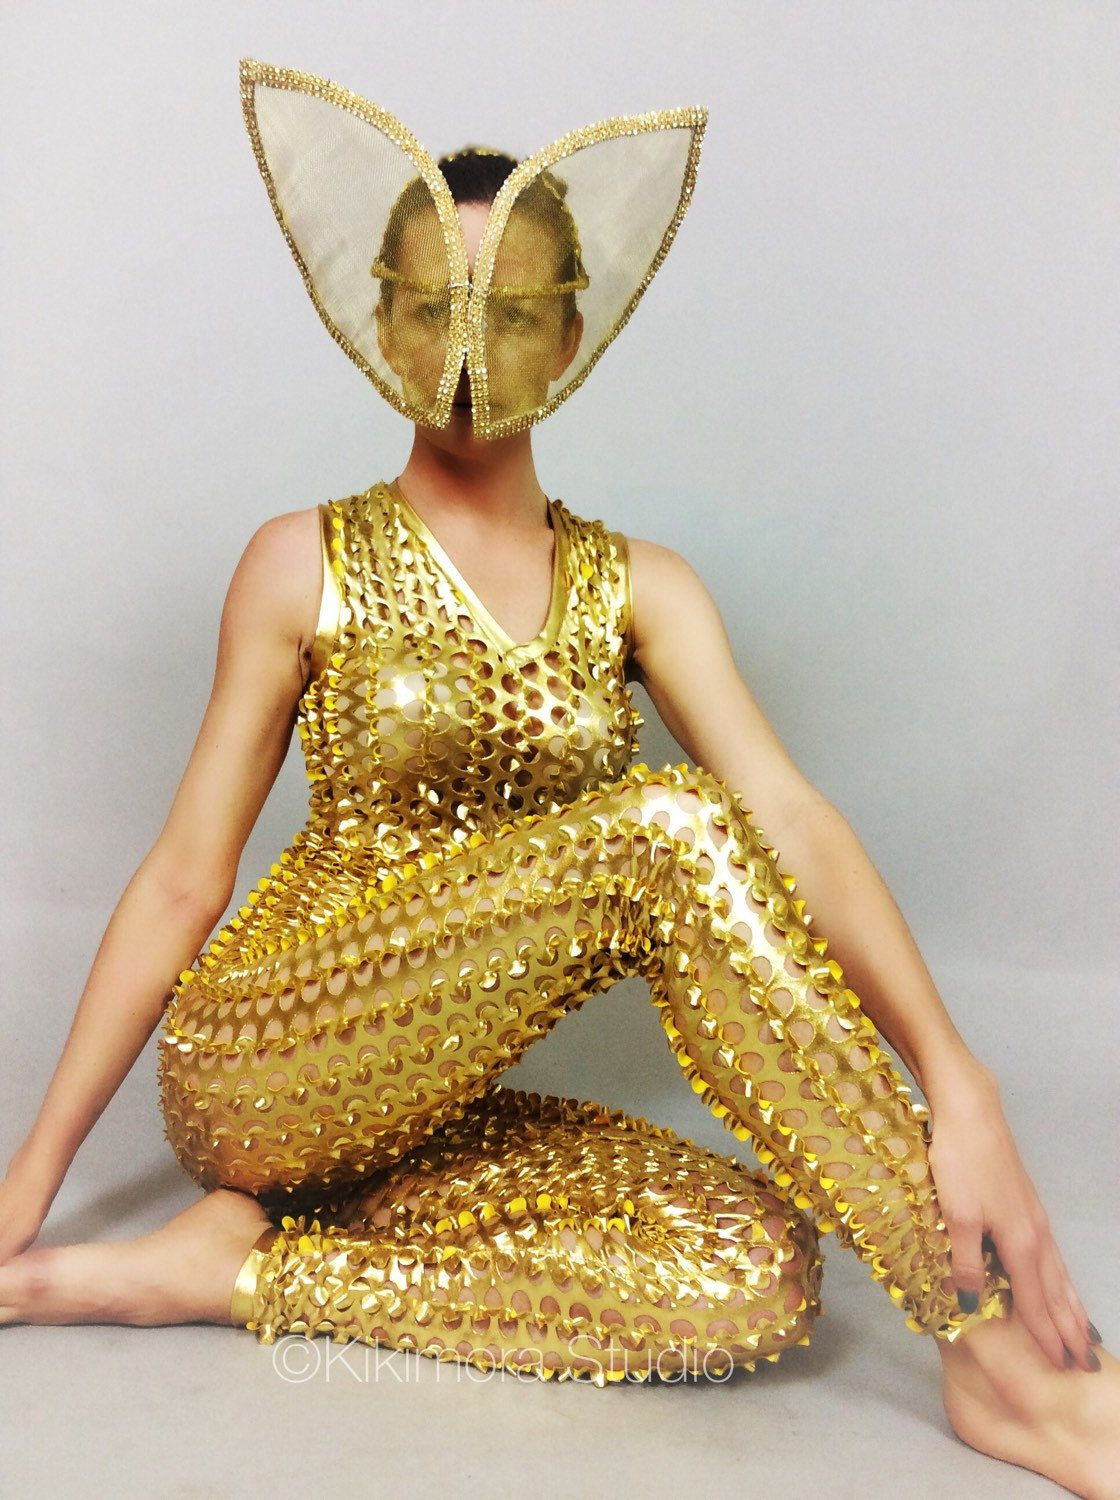 Cheap Price Gold Sparkling Crystals Women Sexy Bodysuit Nightclub Party Dancer Singer Jumpsuit Performance Dj Ds Stage Dance Costume Durable In Use Women's Clothing